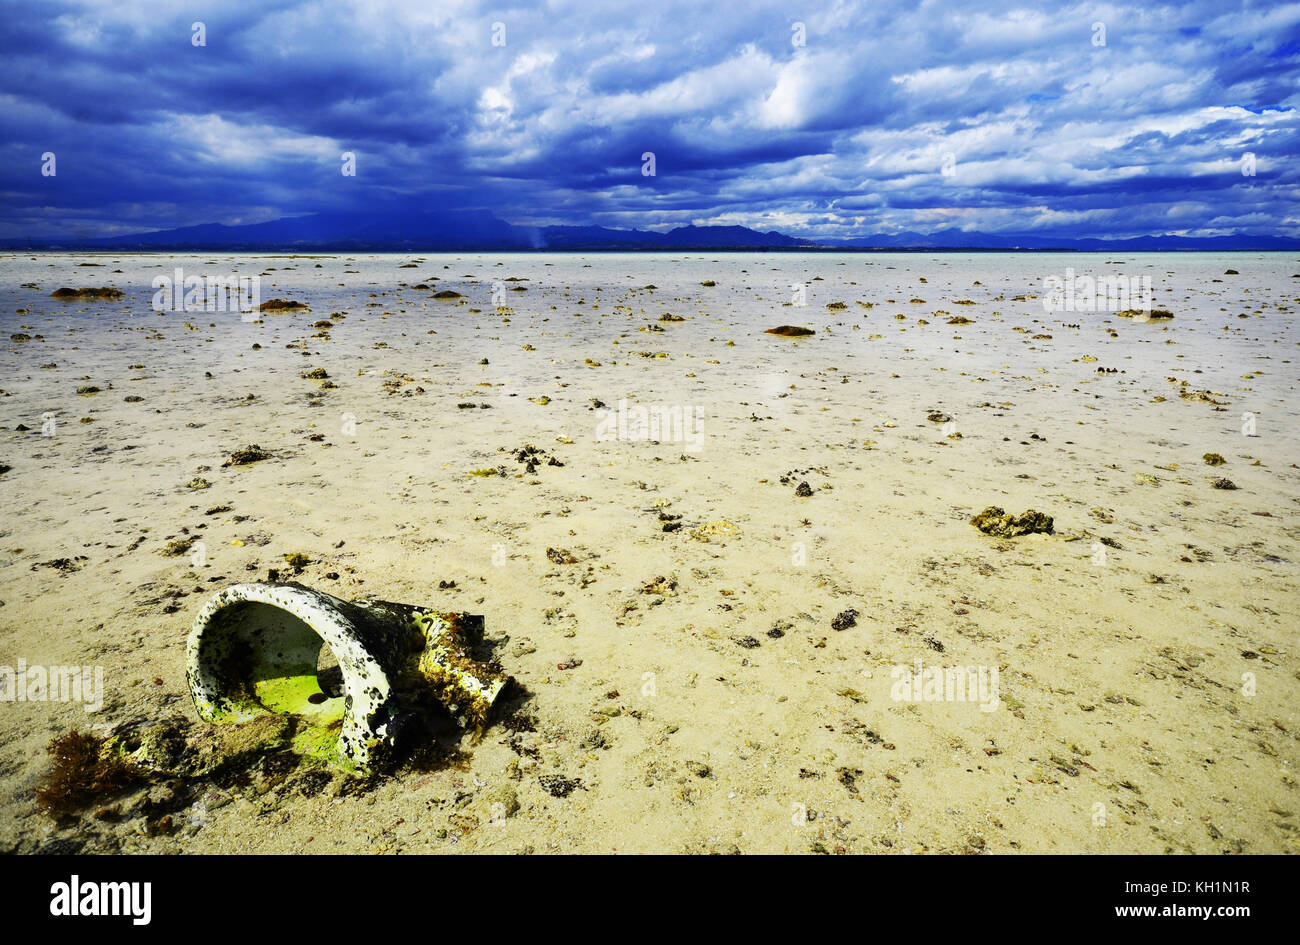 Toilet on ocean floor at uninhabited island near Fiji with storm in background - Stock Image